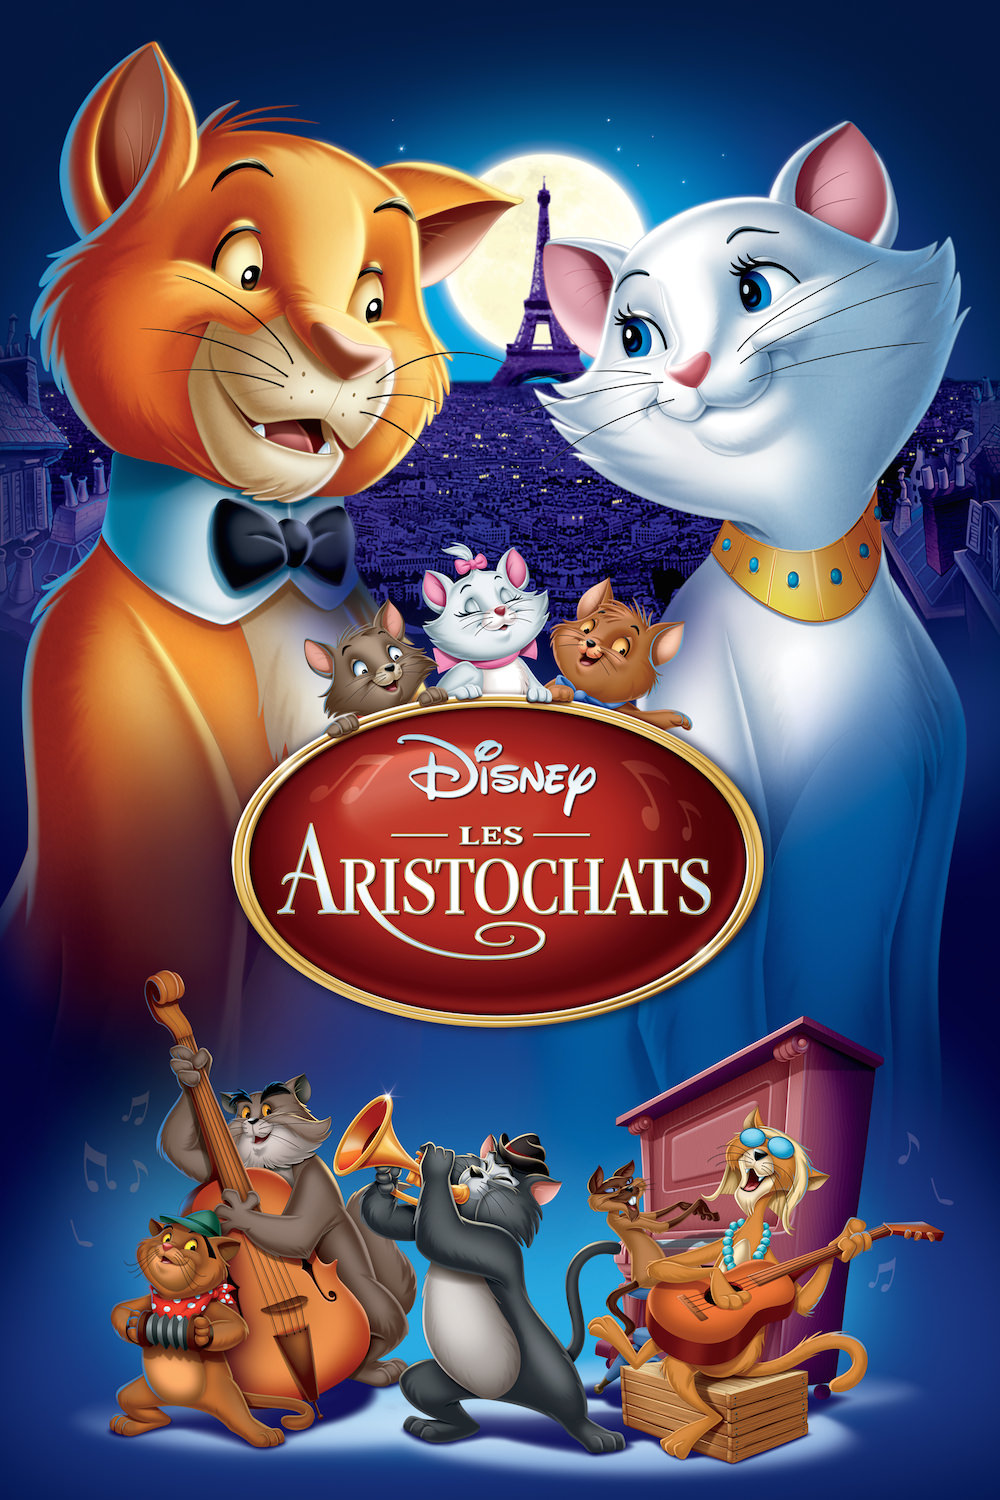 Aristochats reitherman